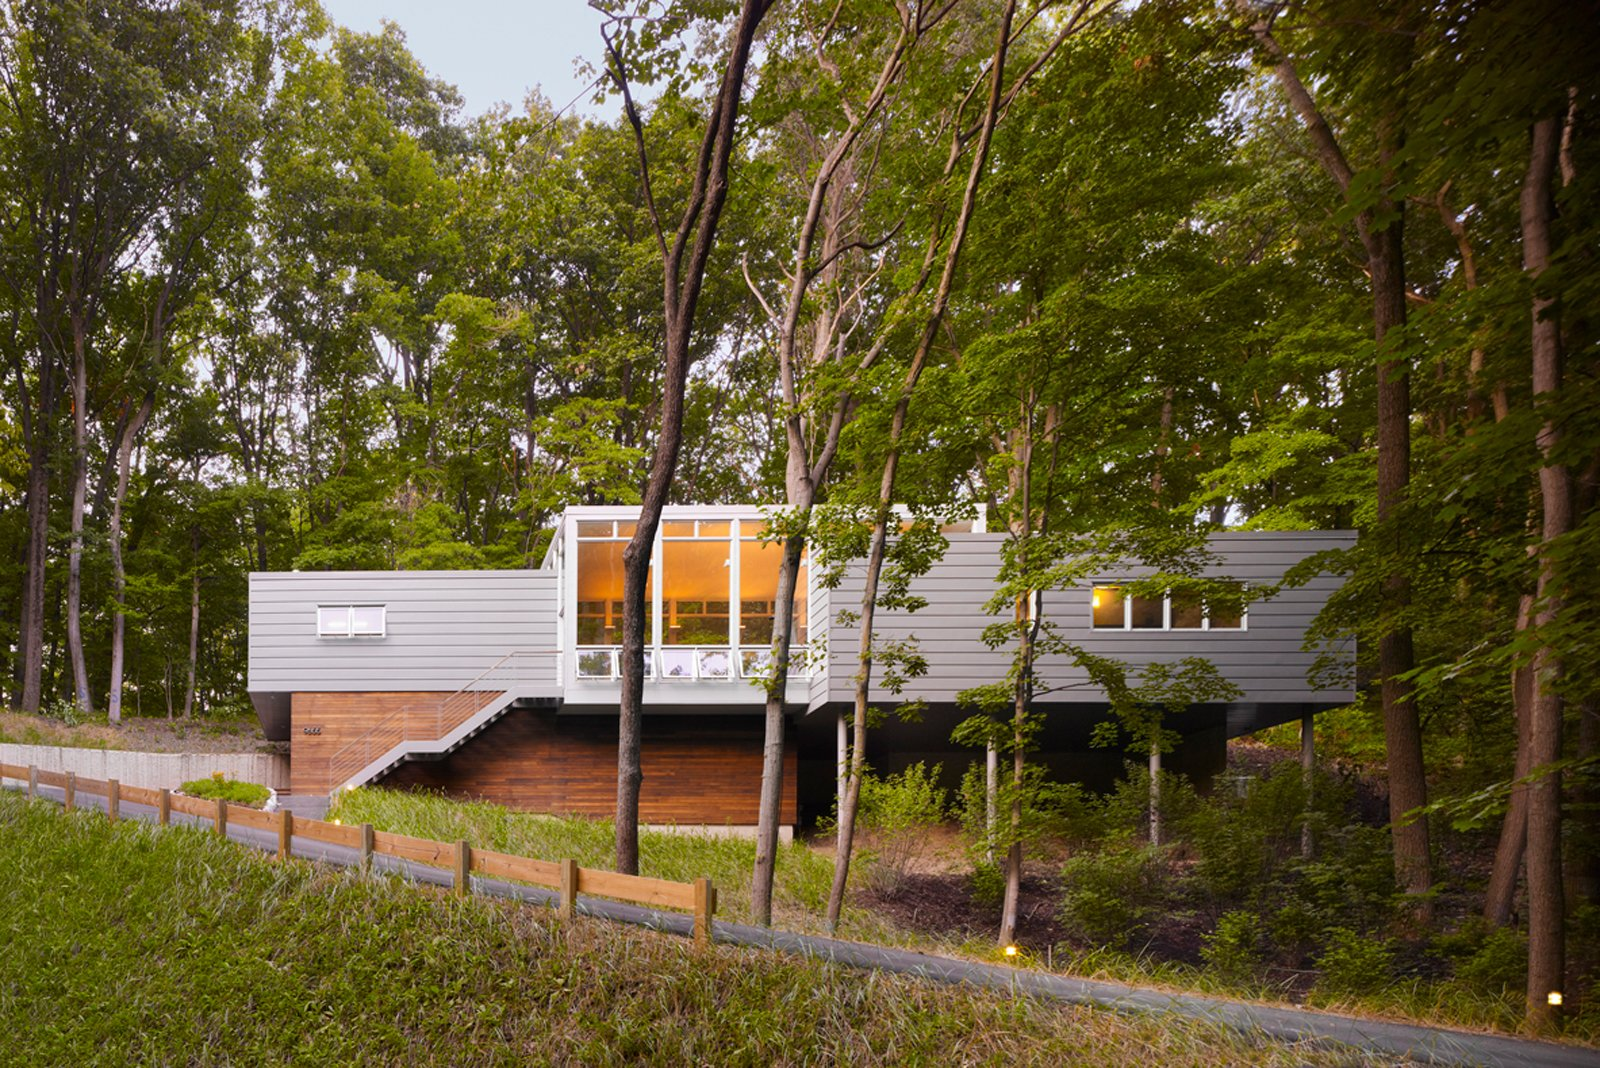 """Built on a challenging hillside site and tucked behind a thicket of trees, the Bridgman, Michigan, house designed by Scott Rappe provides a modern weekend retreat for a Chicago couple. """"One of my first responsibilities was getting the owners up to their house and essentially on one level. Because of the pie-shaped property, we needed to push the building up the hill to provide square footage for the program. By keeping the building perpendicular to the slope, using piloti on one side and a retaining wall on the dune side, we were able to insert foundations with minimal disturbance,"""" says Rappe.  20 Best Modern Homes from the Midwest by Erika Heet from Michigan Modern: 7 Homes in the Great Lake State"""